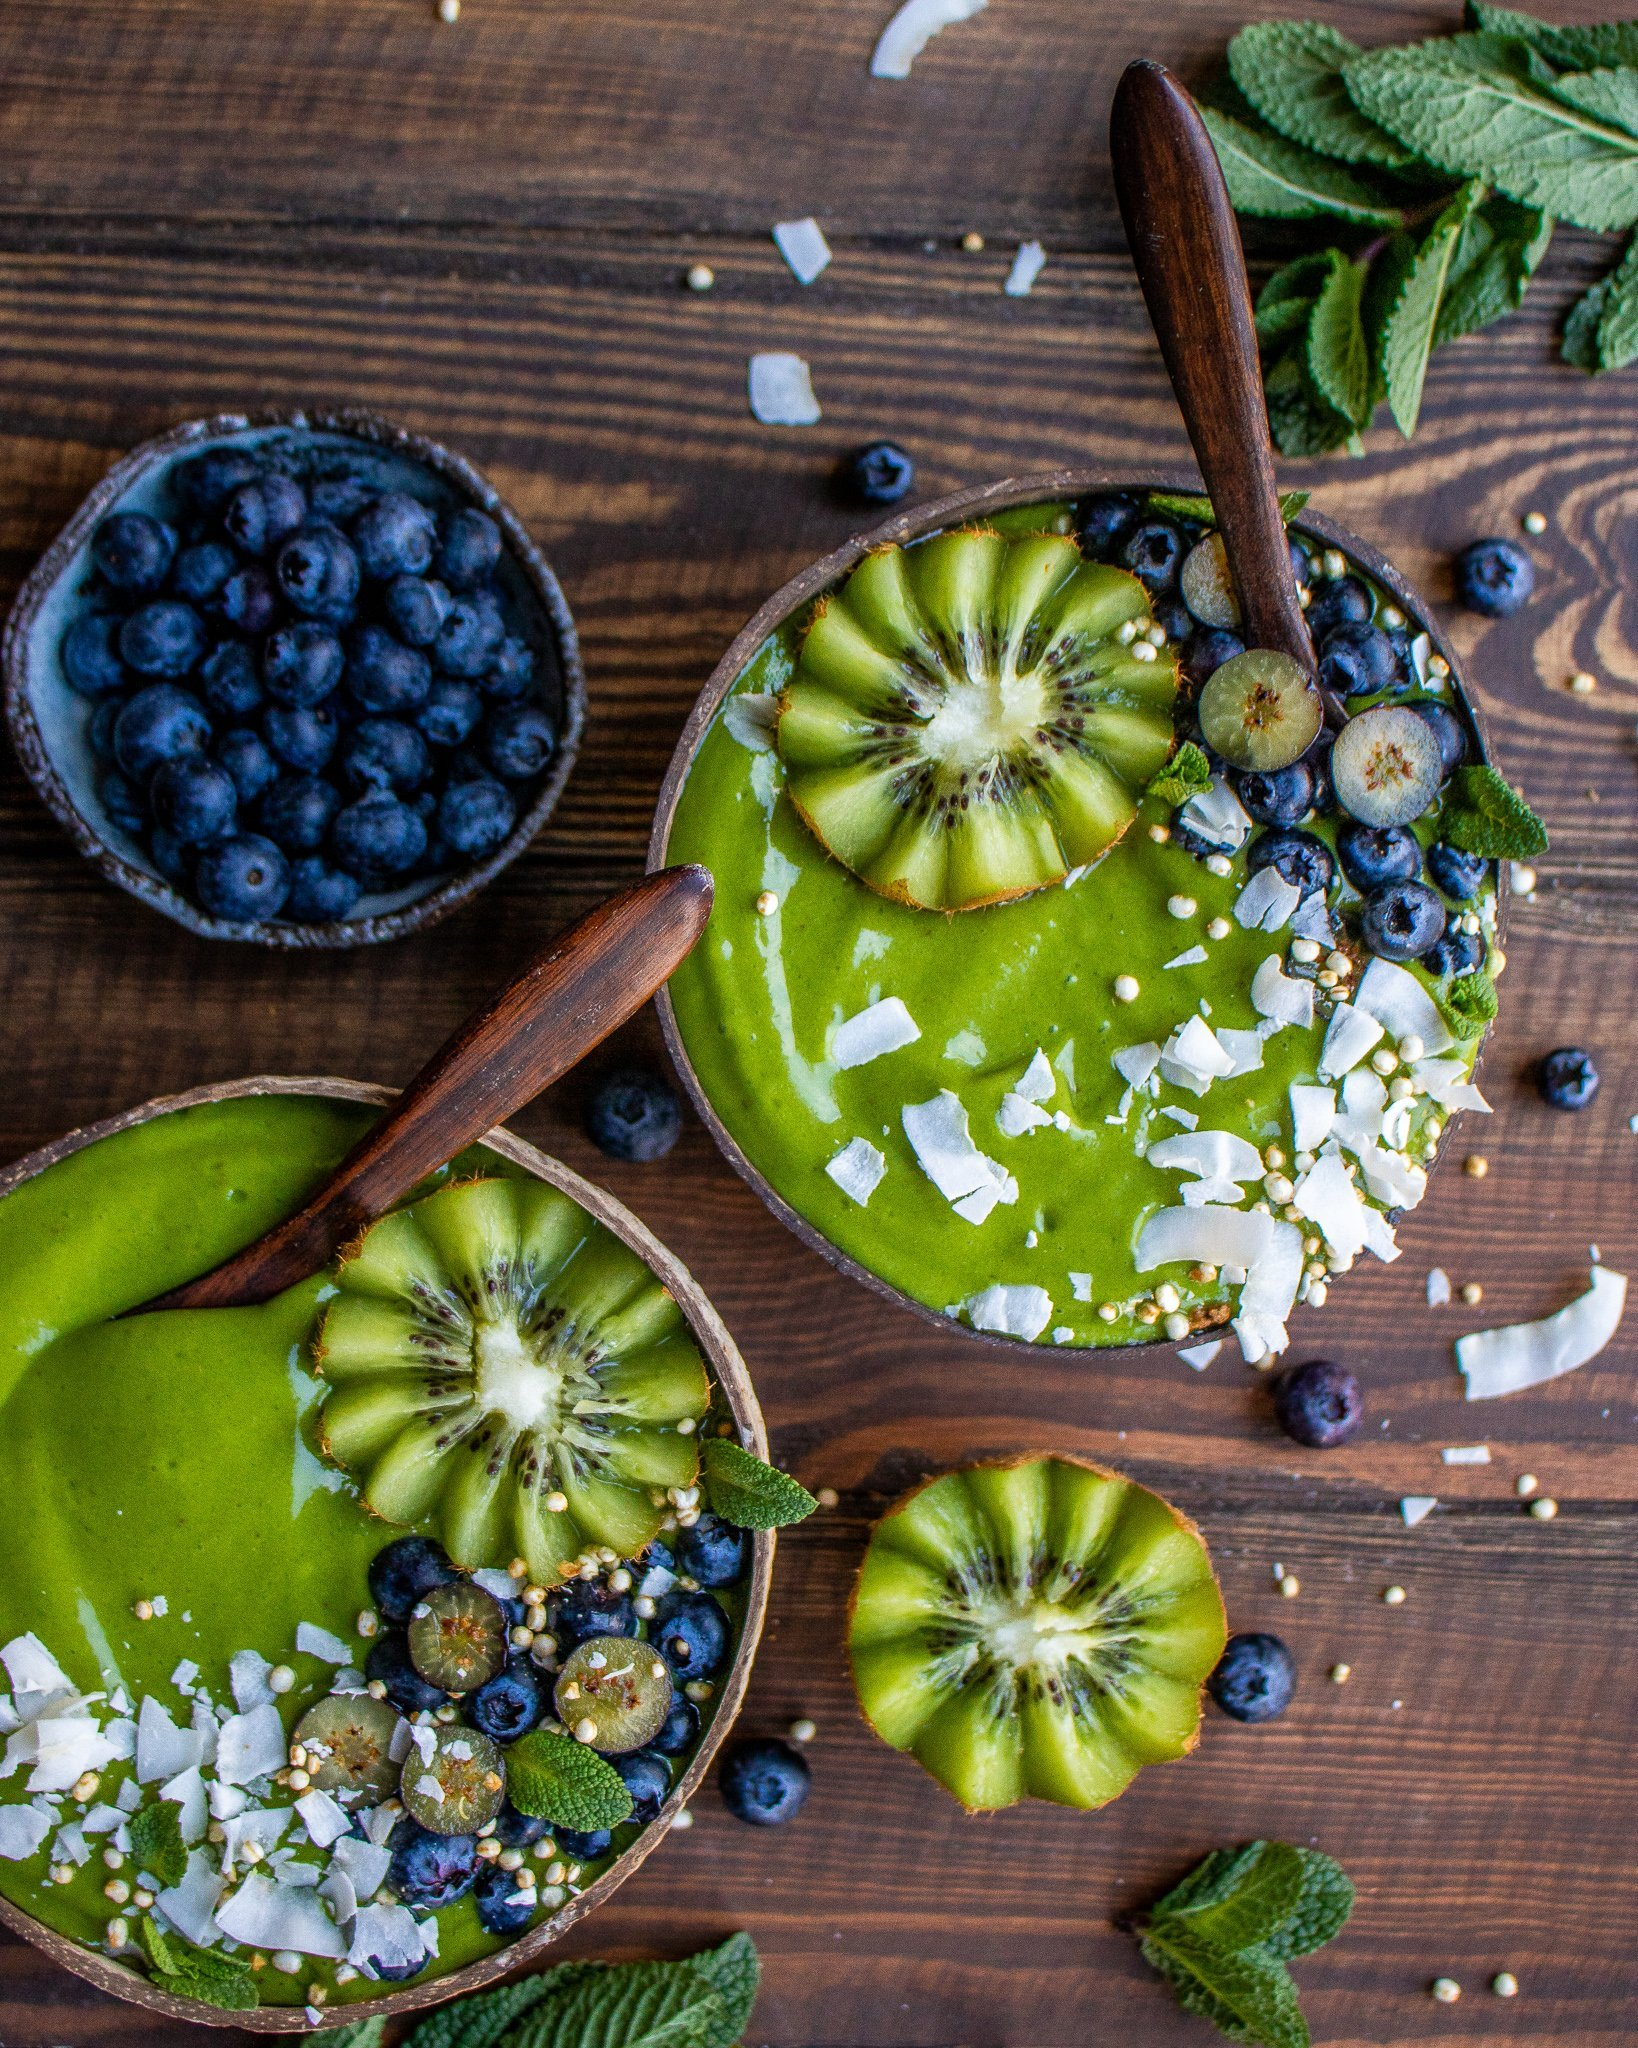 Green Beauty & Green Goddess Smoothie Bowl